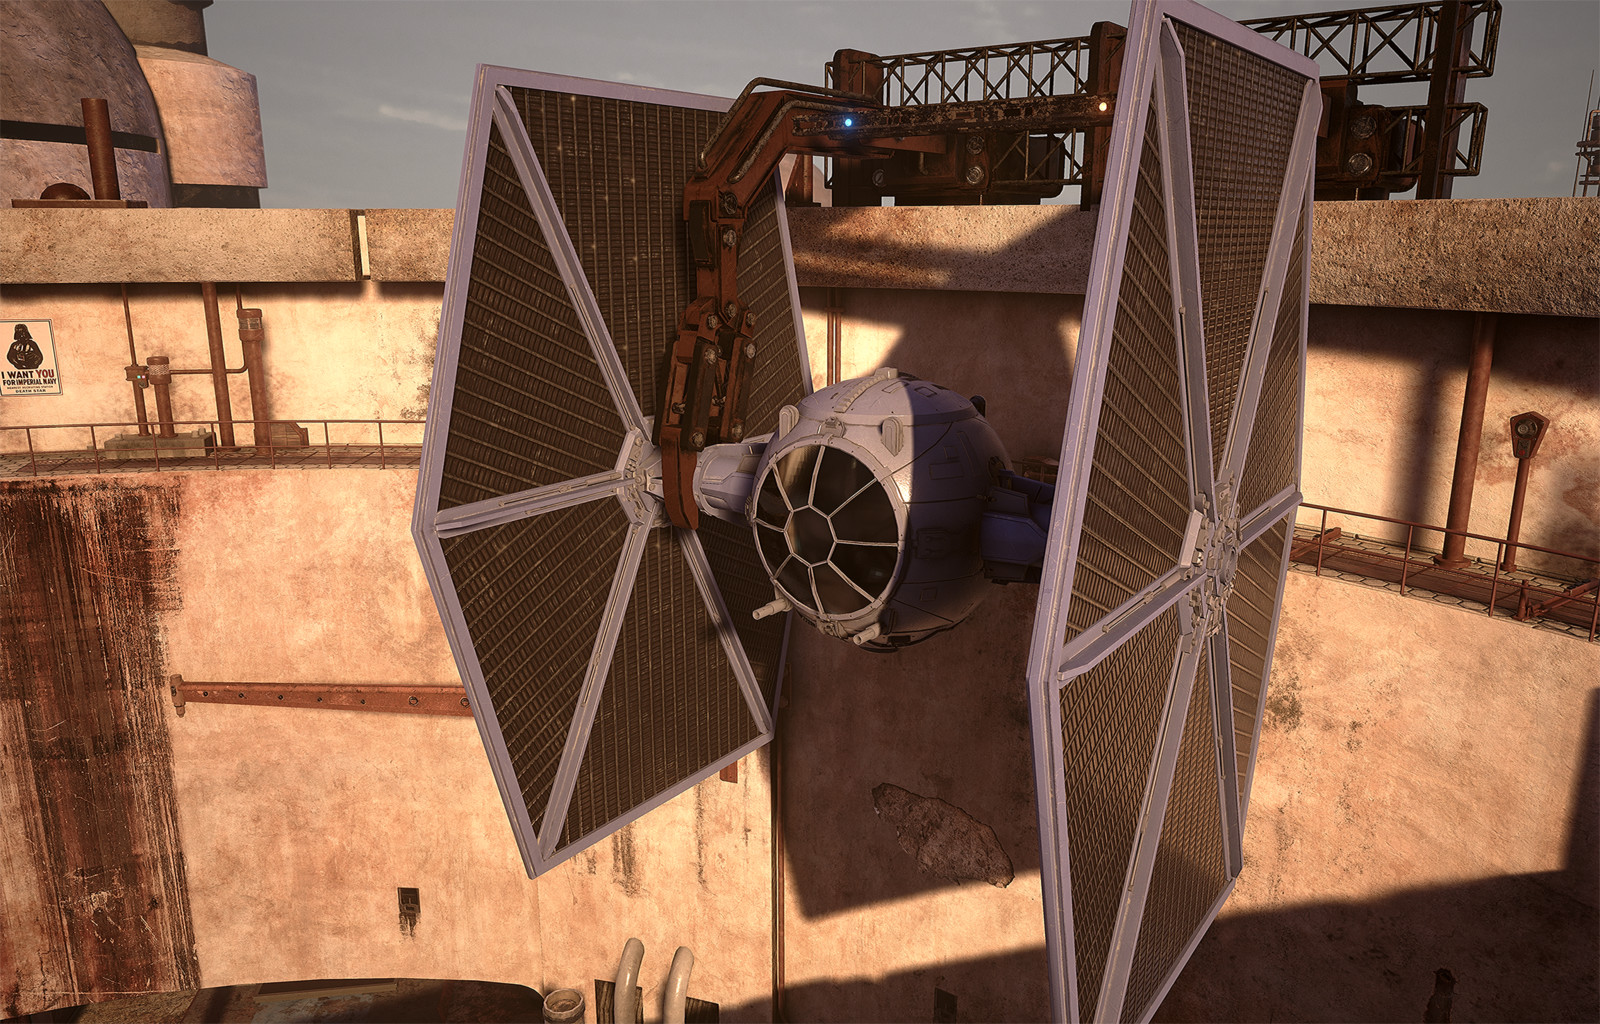 Star Wars Docking Bay 91 Tie Fighter